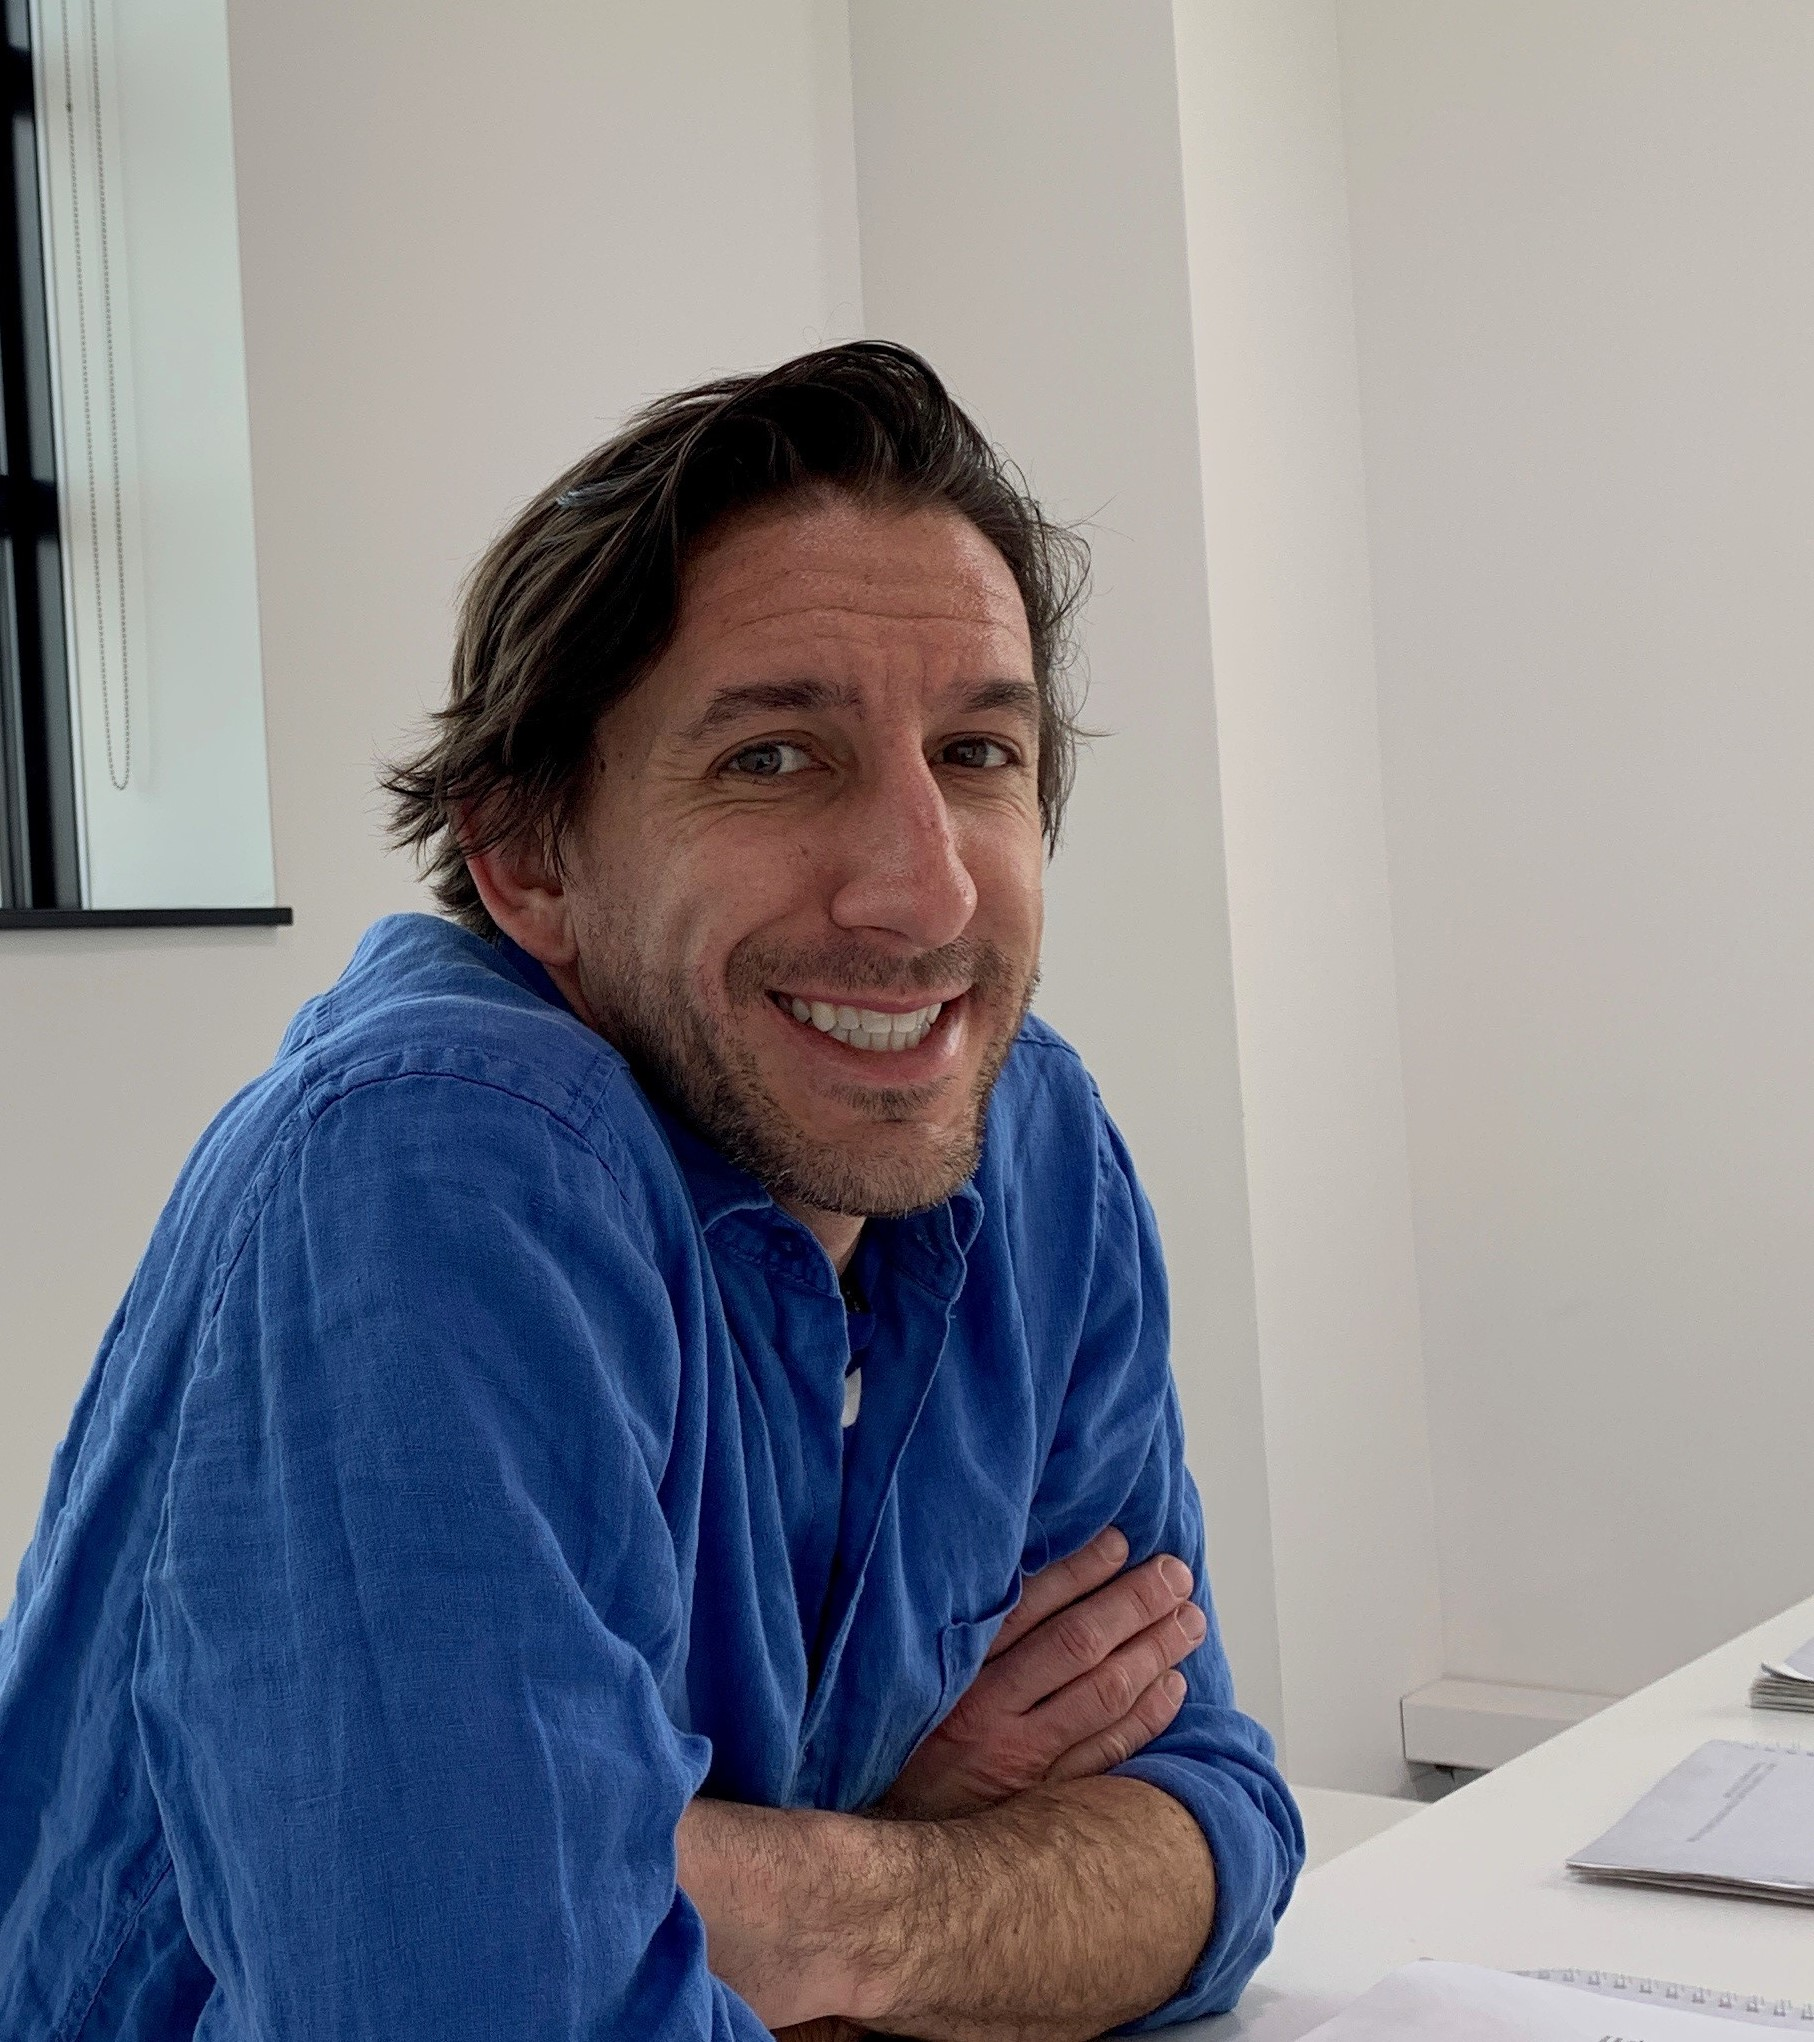 Ryan Sorichetti smiling and sitting at a table with his arms folded